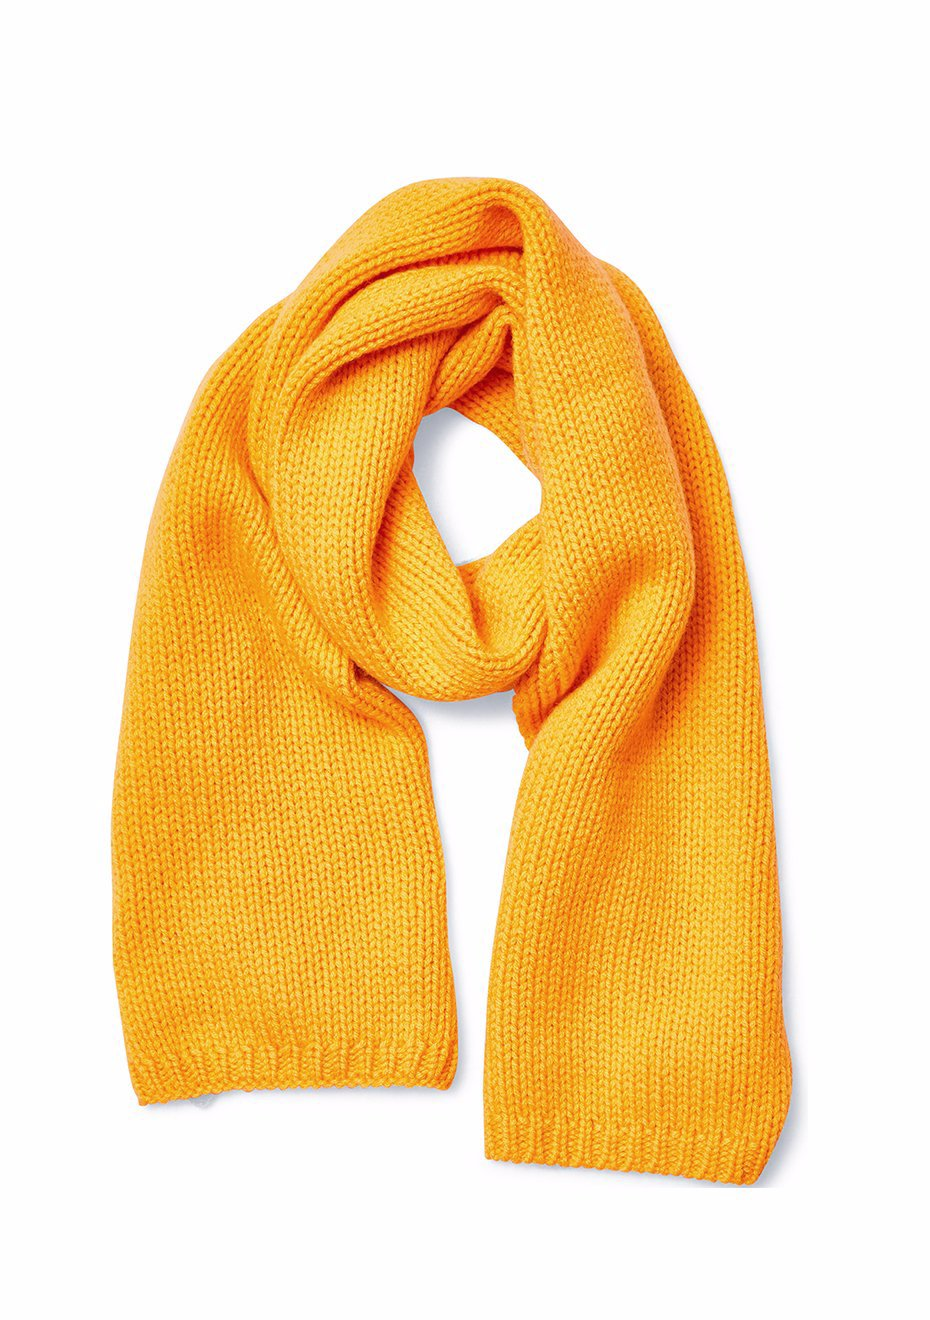 Clementine Cashmere Scarf